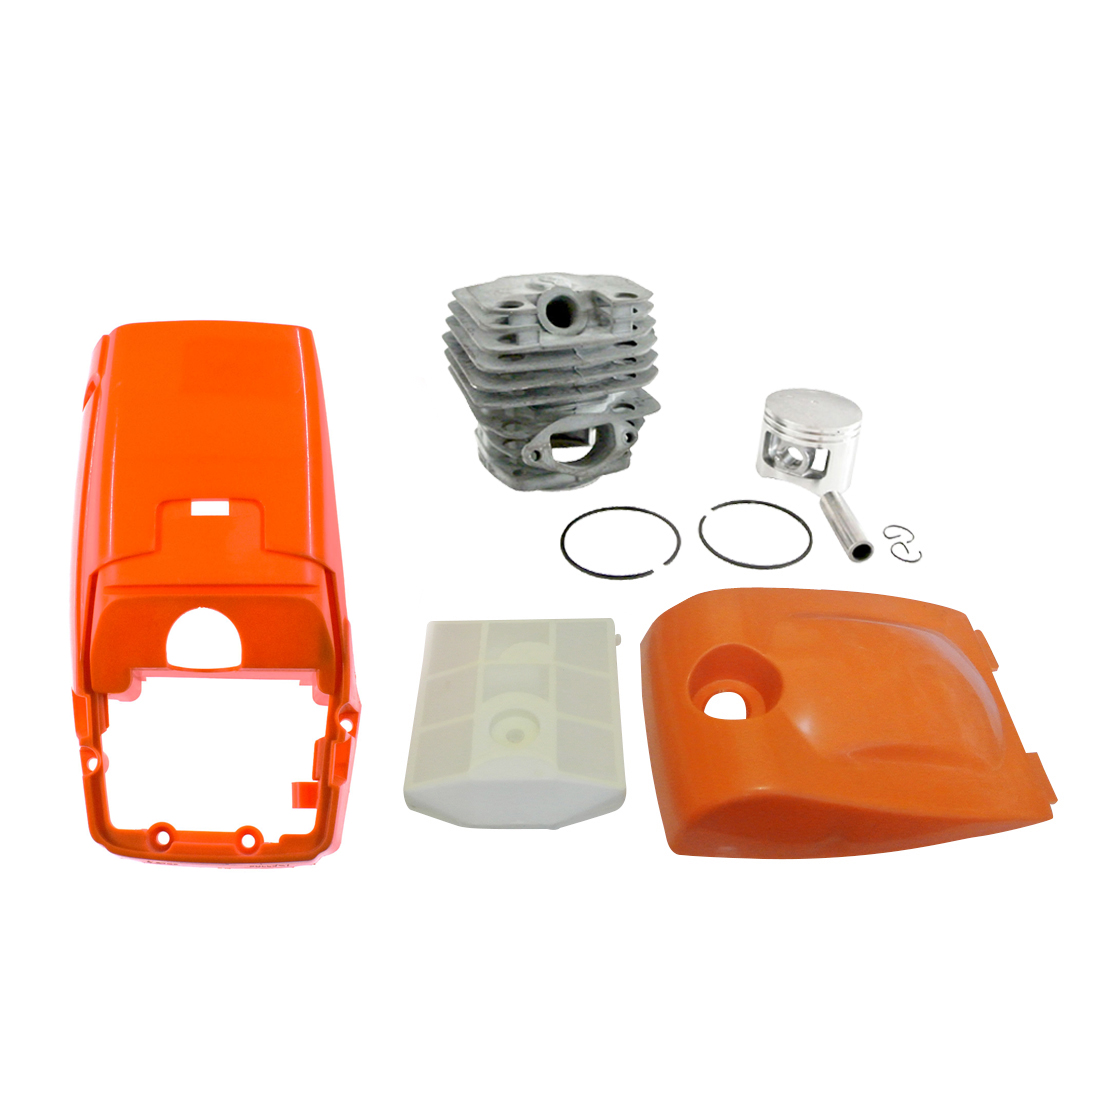 Top Engine Cover And Air Filter Kit W/ 45mm Cylinder Pin Kit Fit 5200 52cc Saw